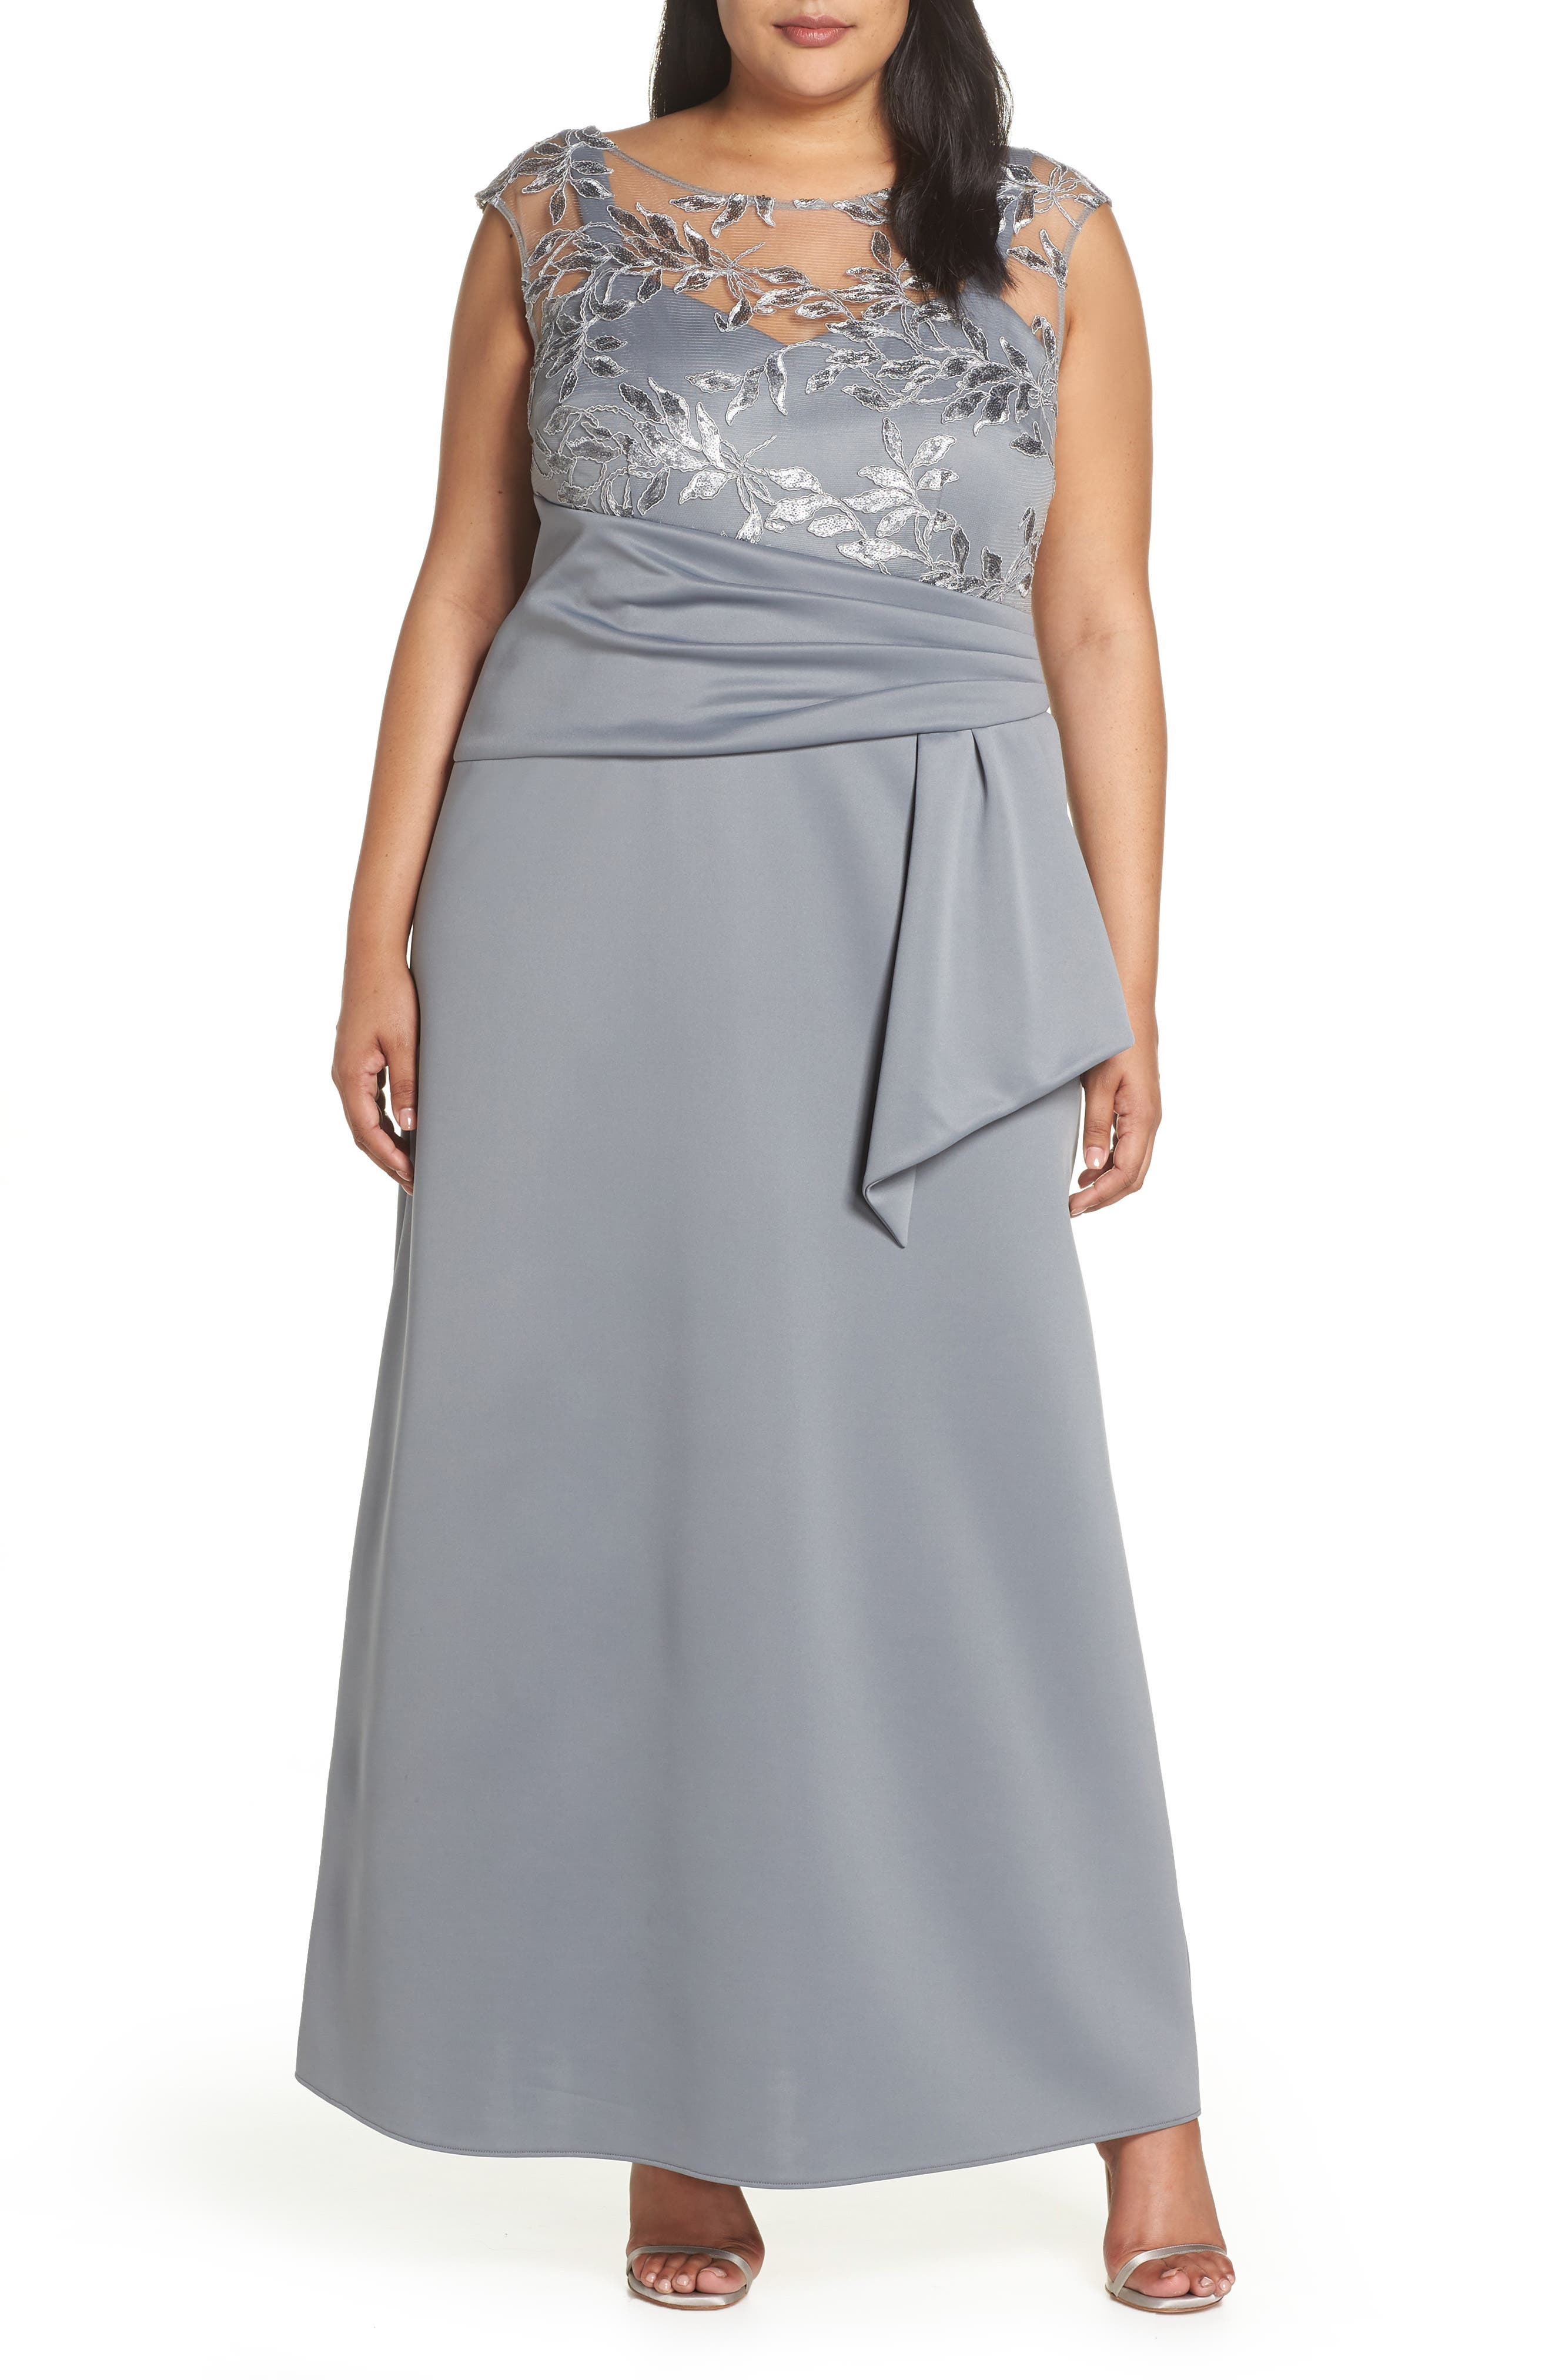 1940s Evening, Prom, Party, Formal, Ball Gowns Plus Size Womens Brianna Sequin Embroidered Gown $168.00 AT vintagedancer.com